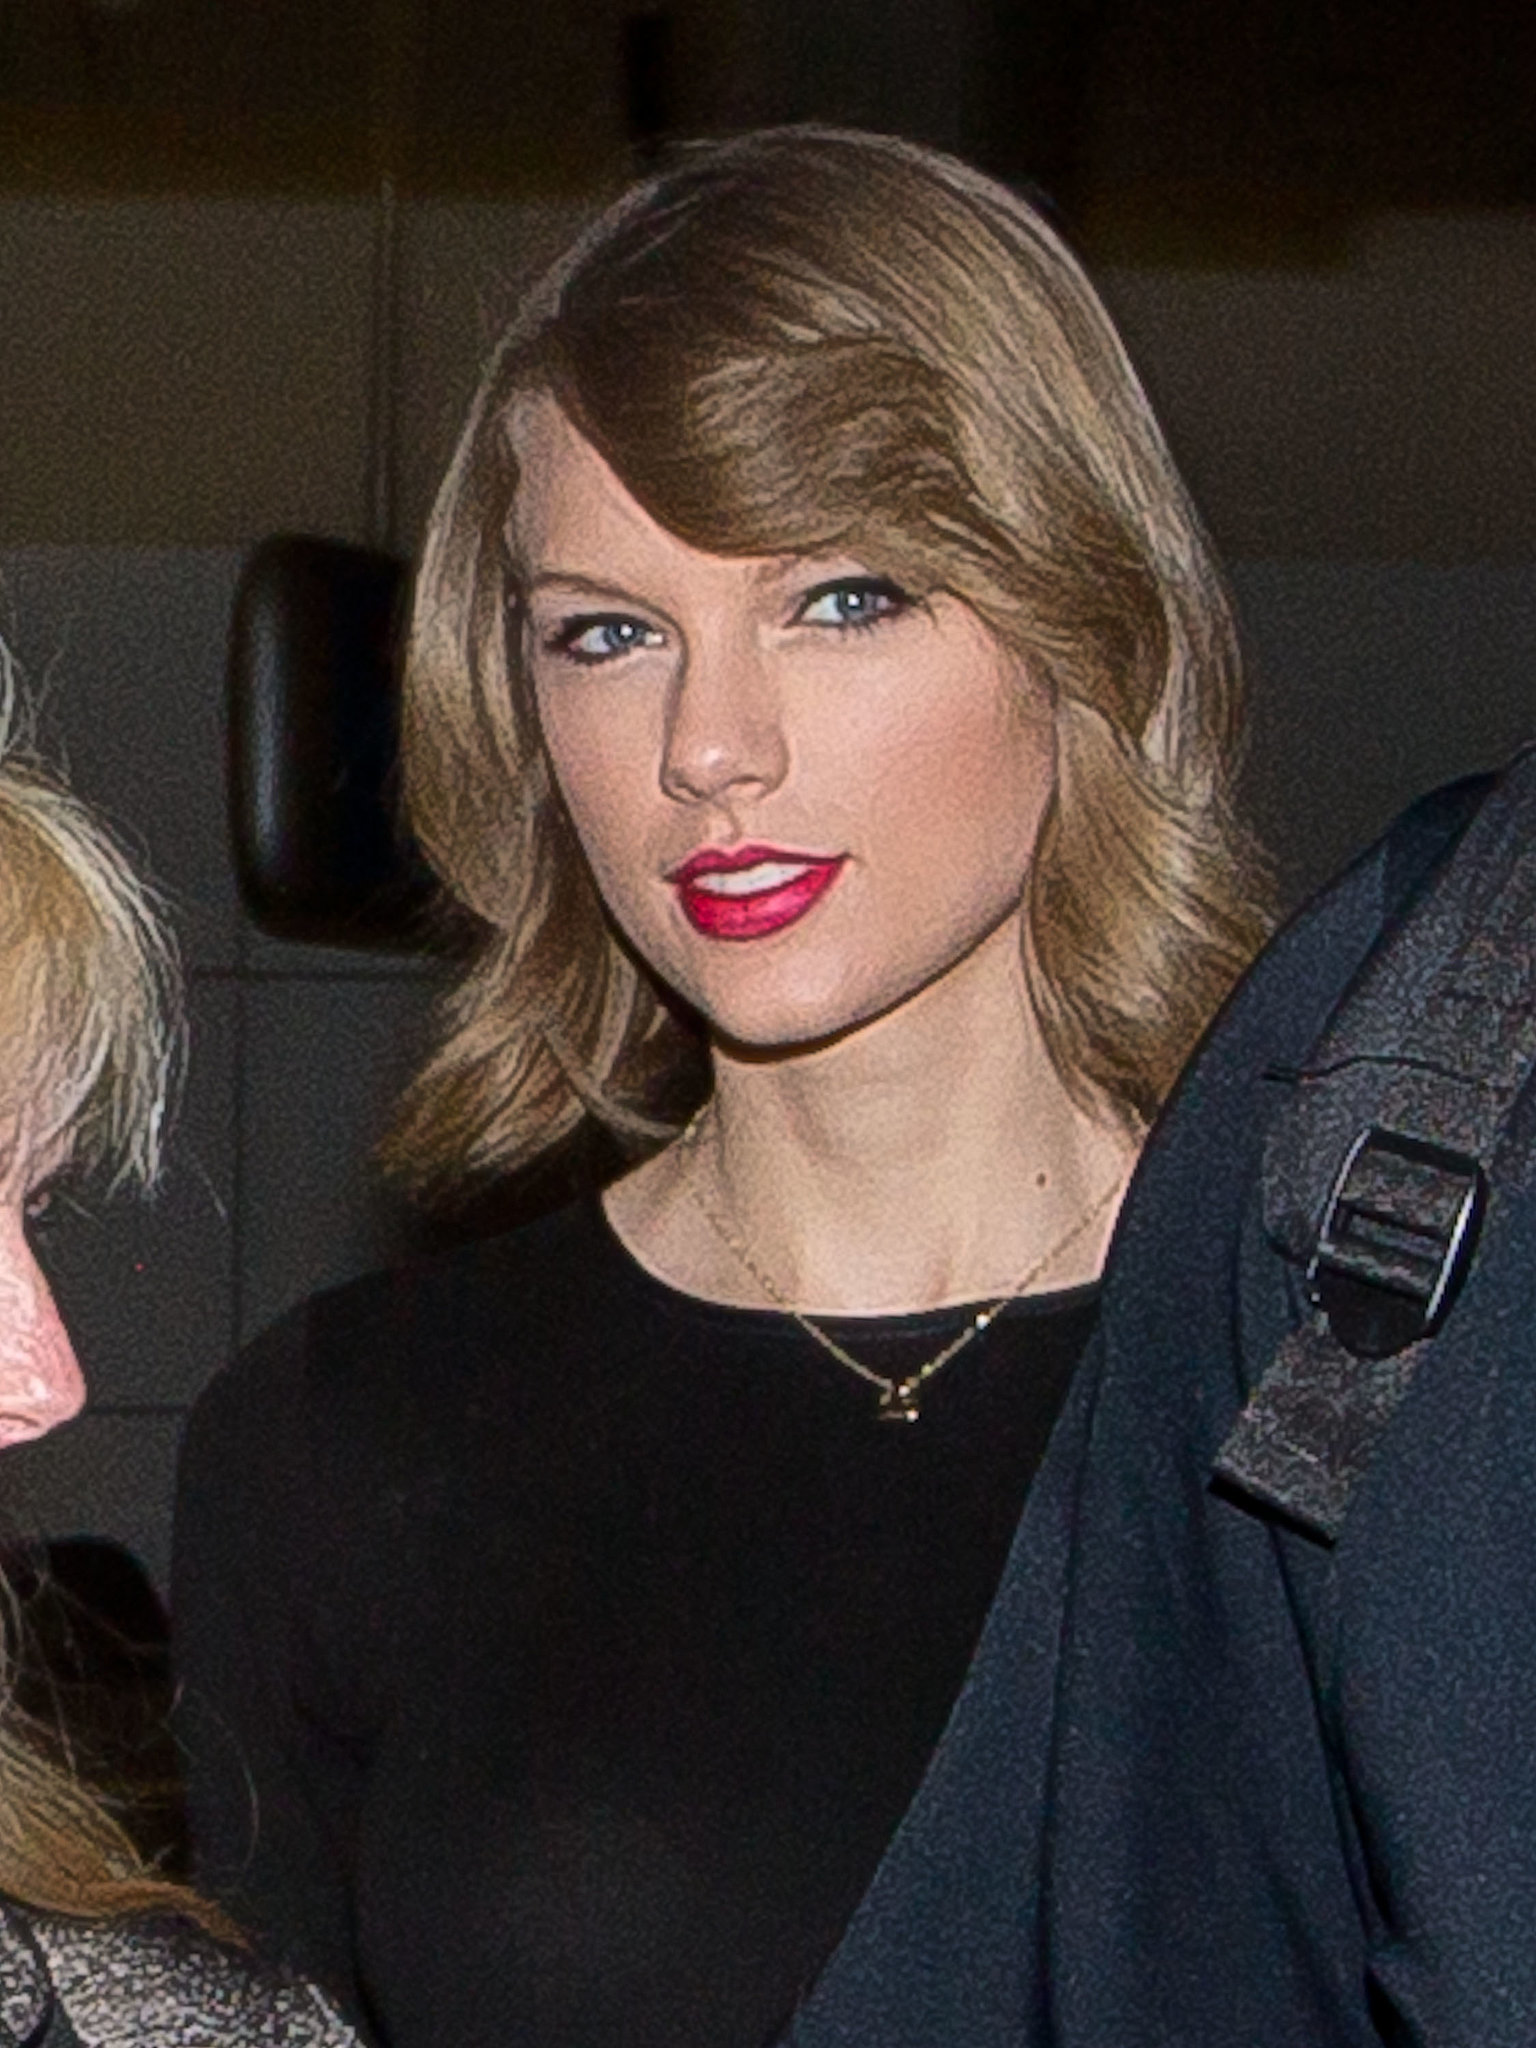 This week the most shocking celebrity hair change debuted on Instagram. Taylor Swift cut her hair into a shoulder-length bob and invited all her celebrity friends to watch.